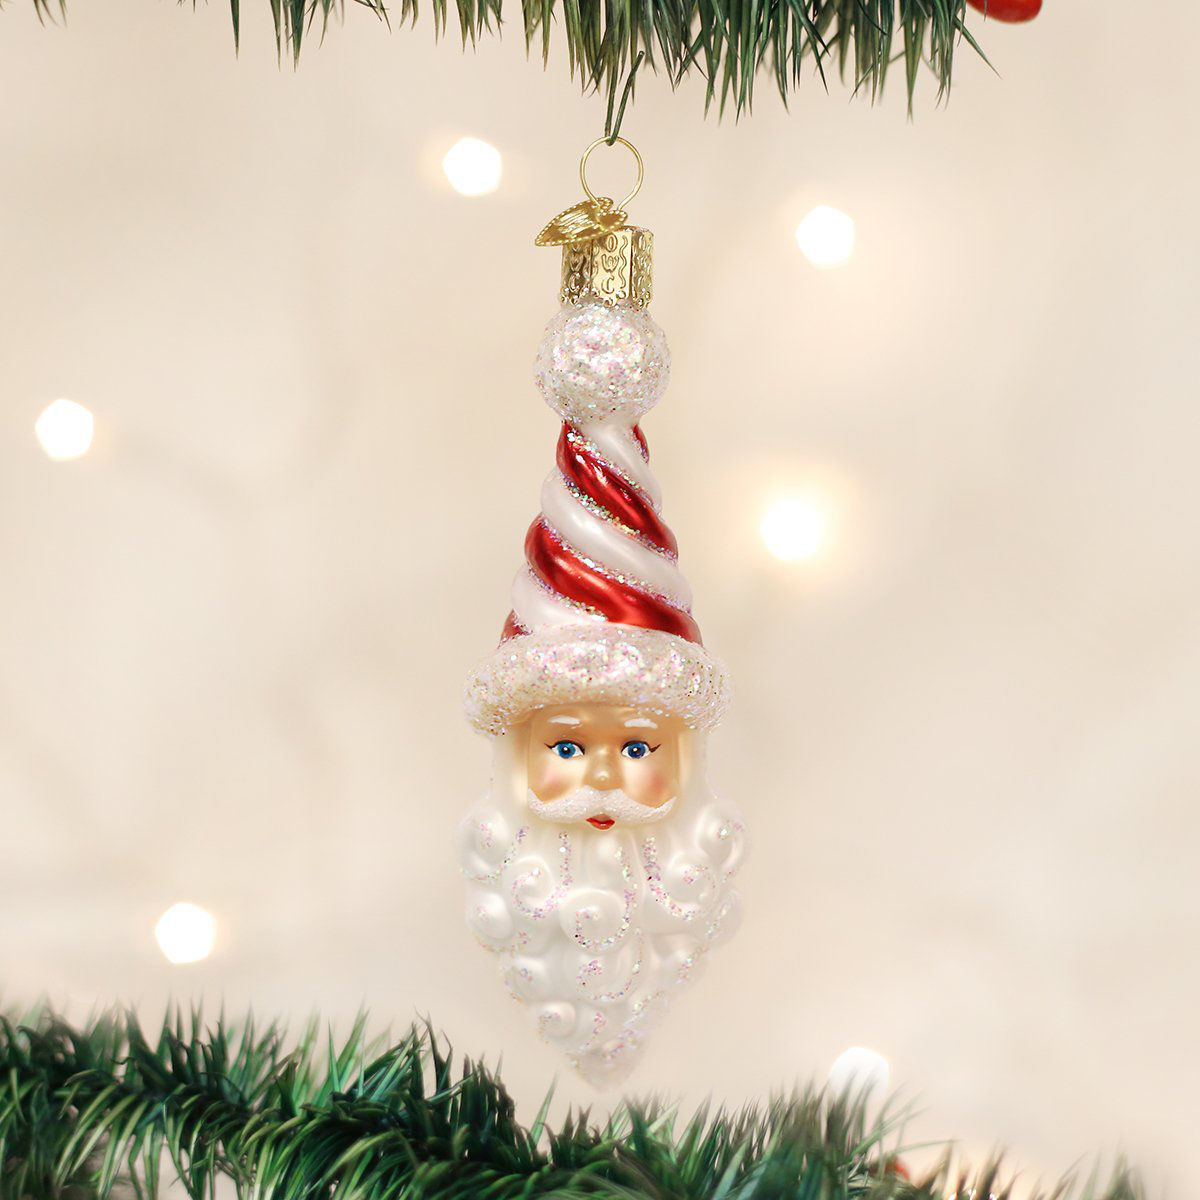 Peppermint Twist Santa Ornament by Old World Christmas